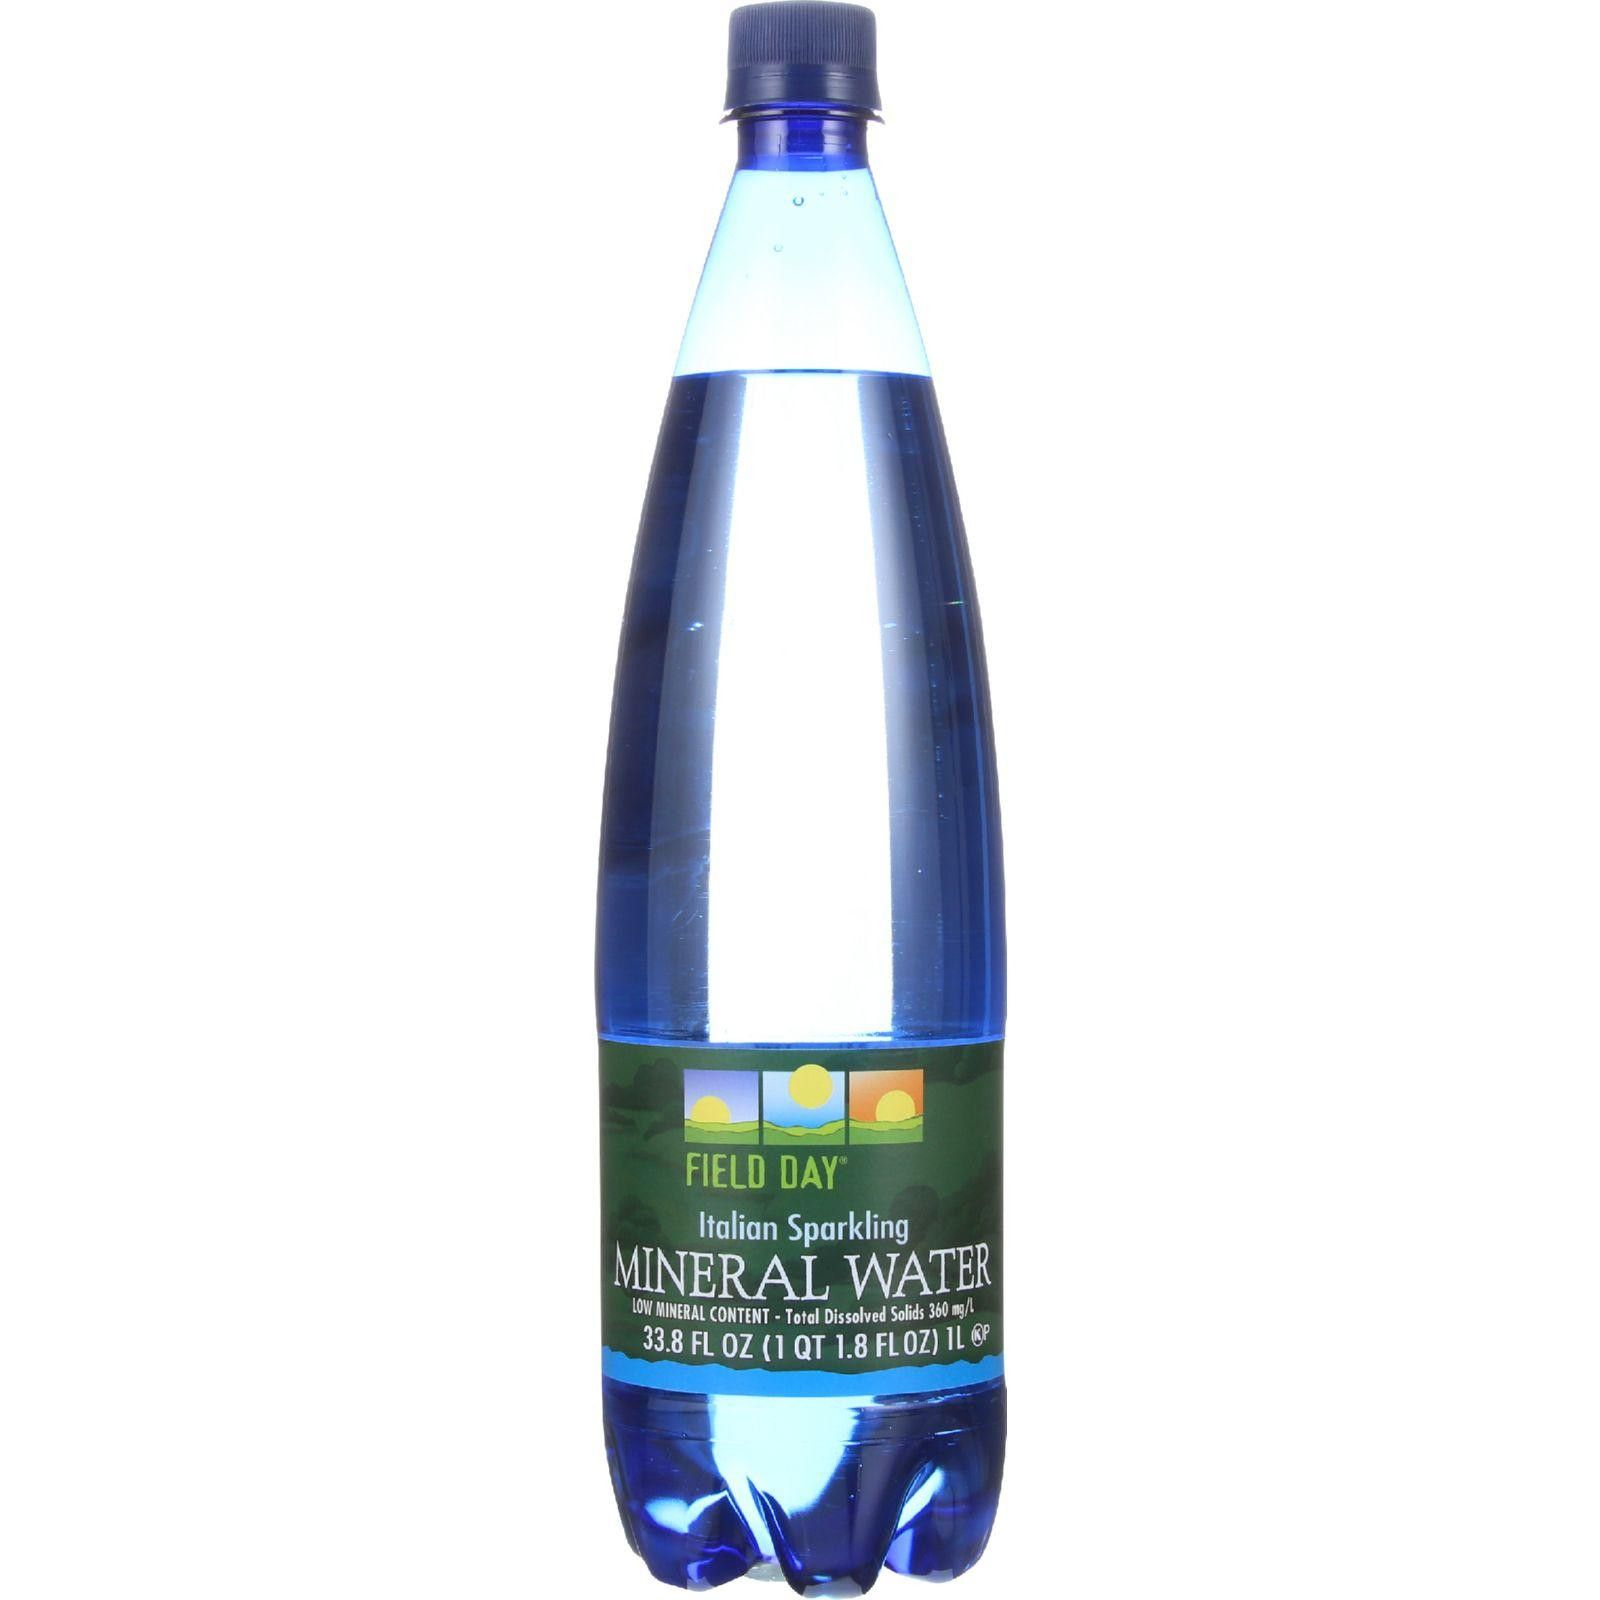 Field day mineral water italian sparkling 1 l case